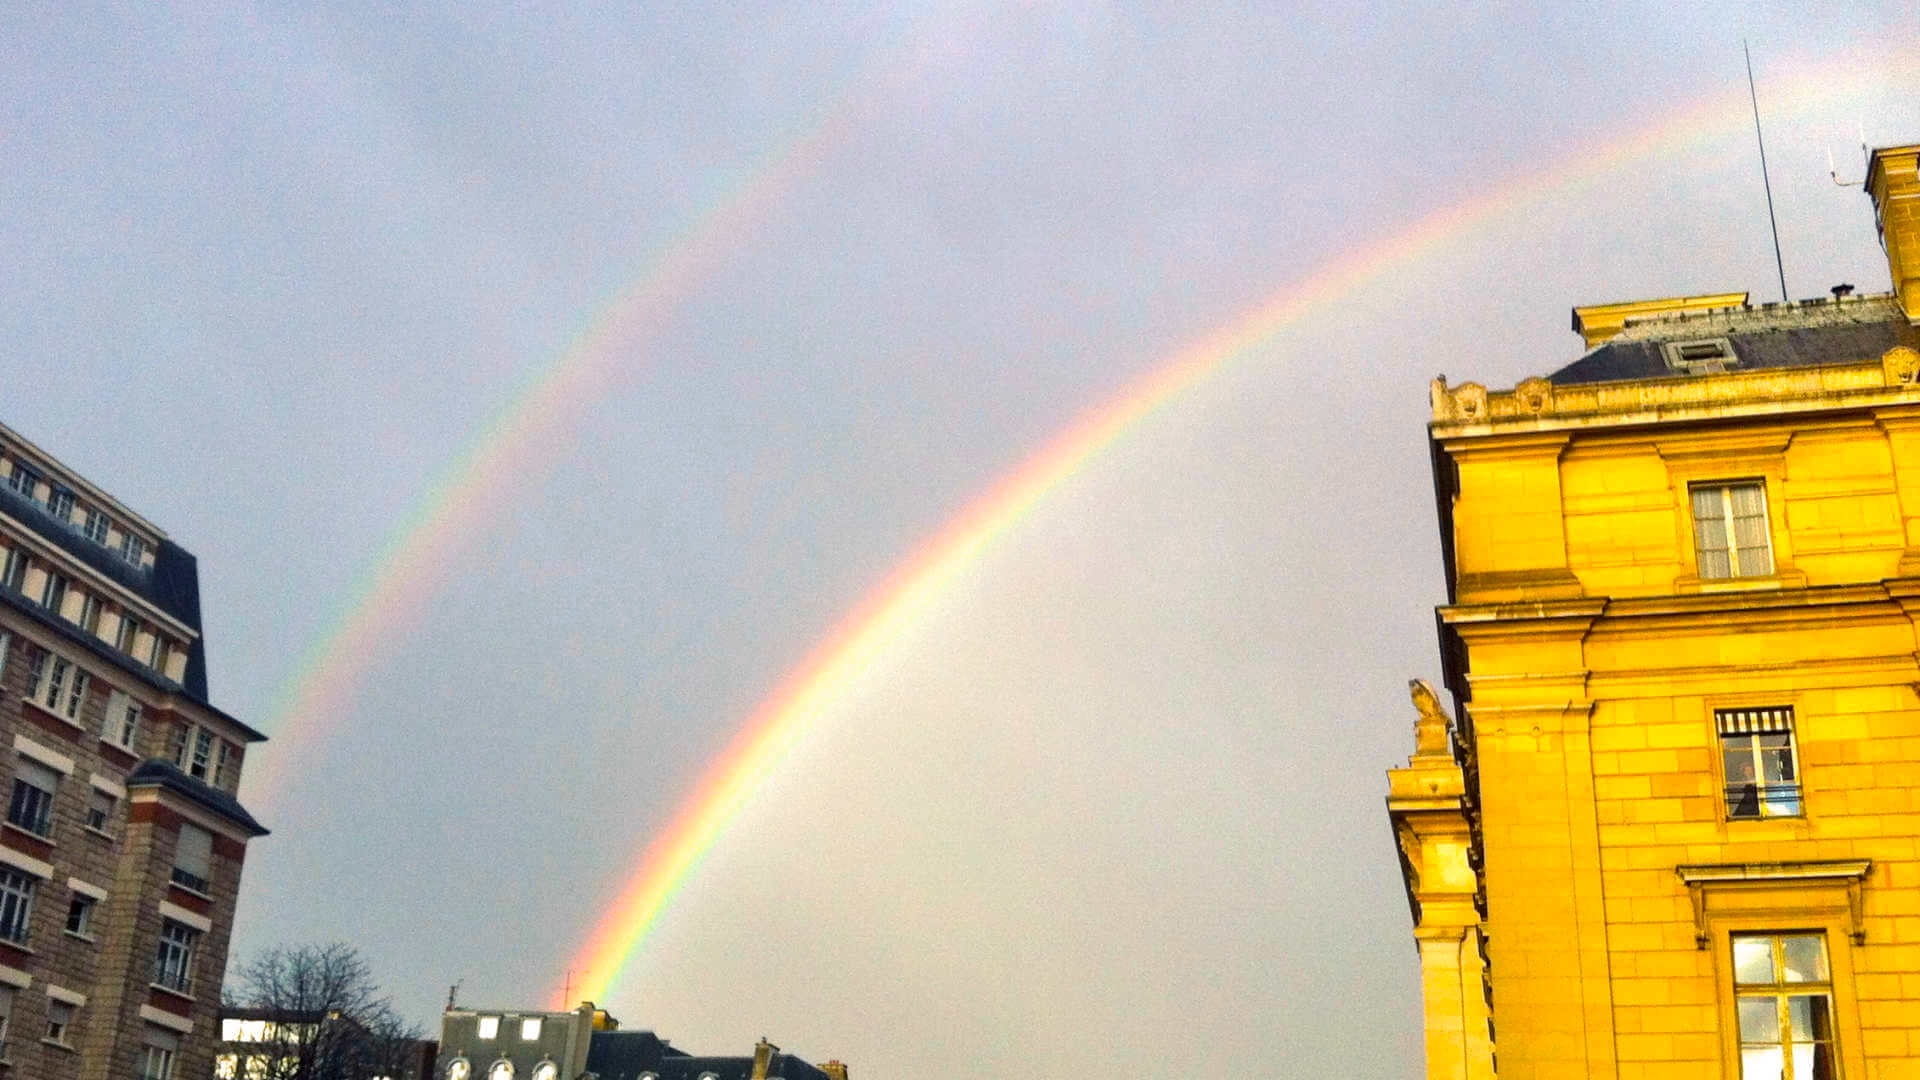 A rare double rainbow in Paris has to signify something positive, right?